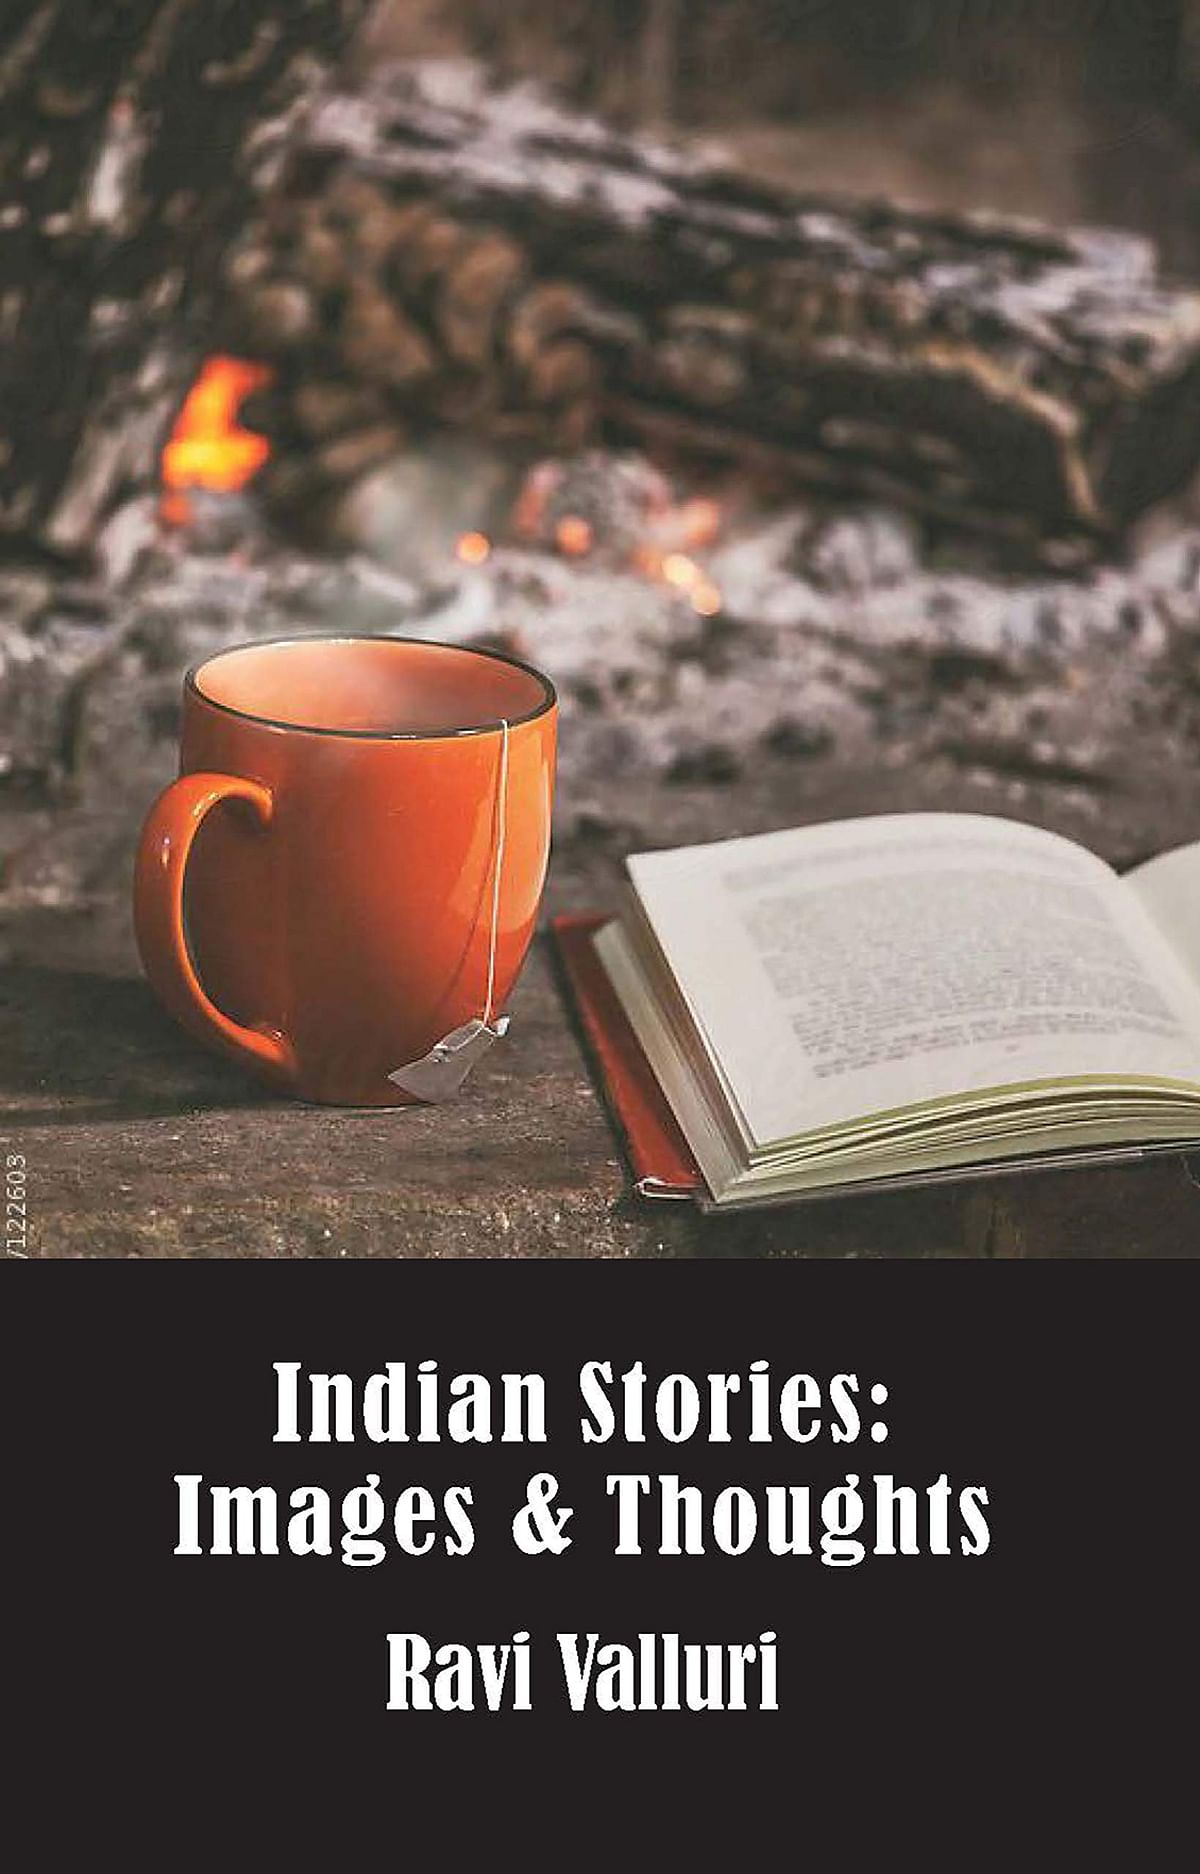 Indian Stories: Images & Thoughts review: Casts a magic spell on readers!